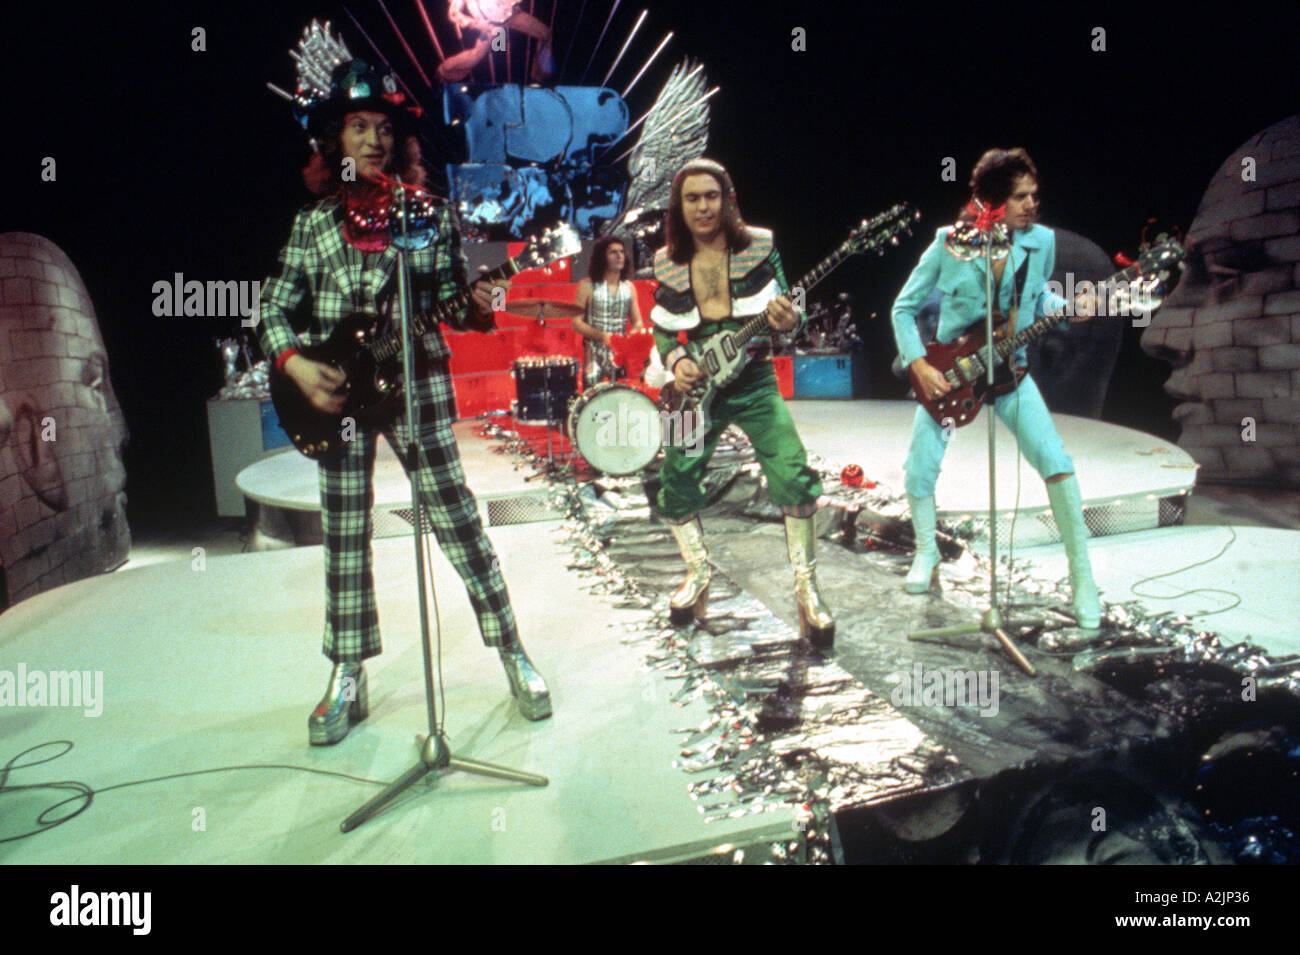 SLADE UK Glam Rock band of the 70s with Noddy Holder at left - Stock Image